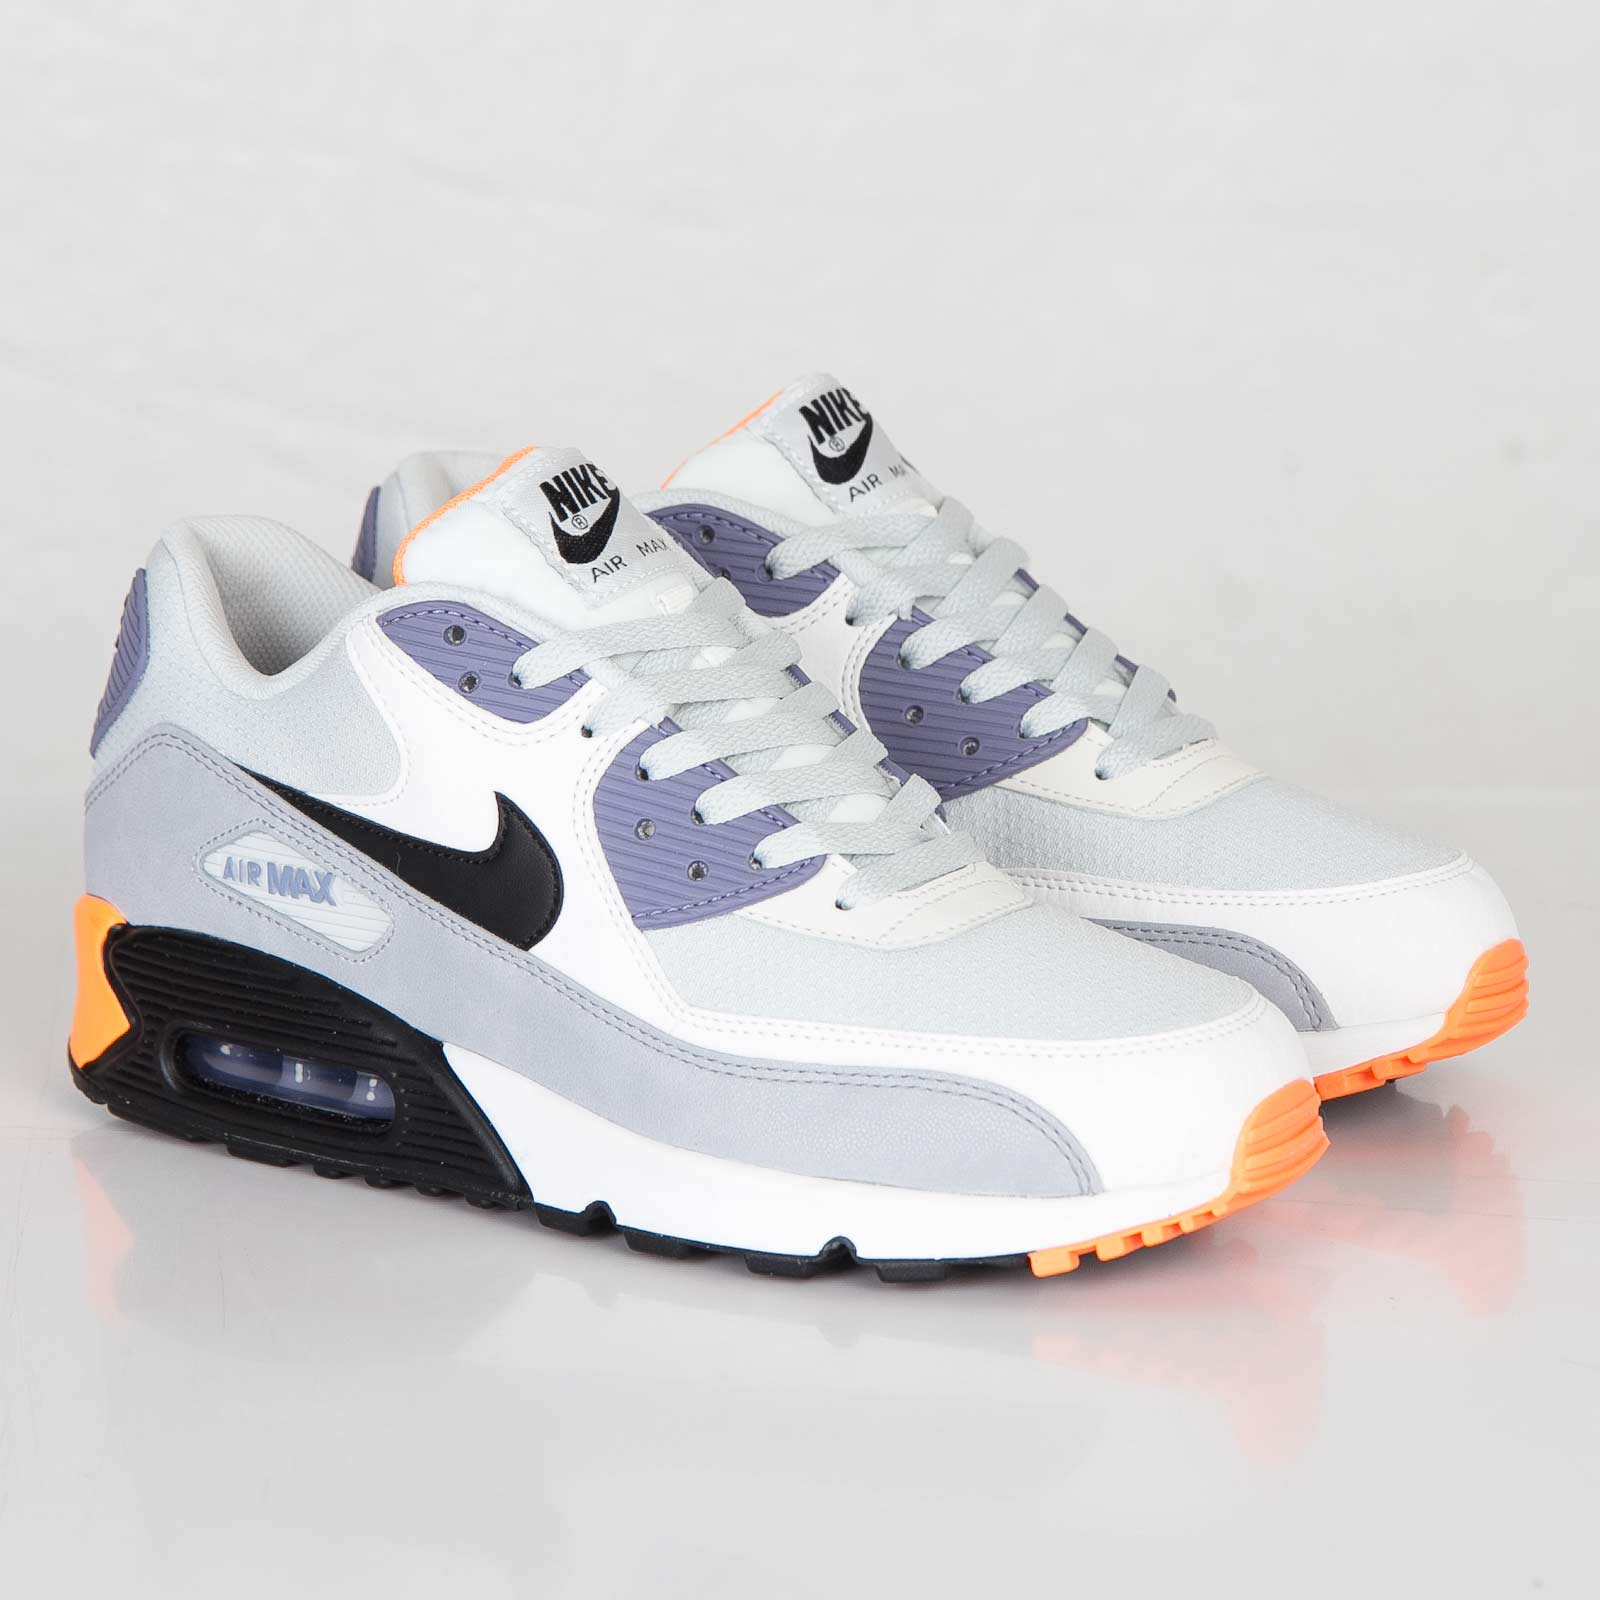 Nike Air Max 90 Essential - 537384-005 - Sneakersnstuff  a4c26c47c